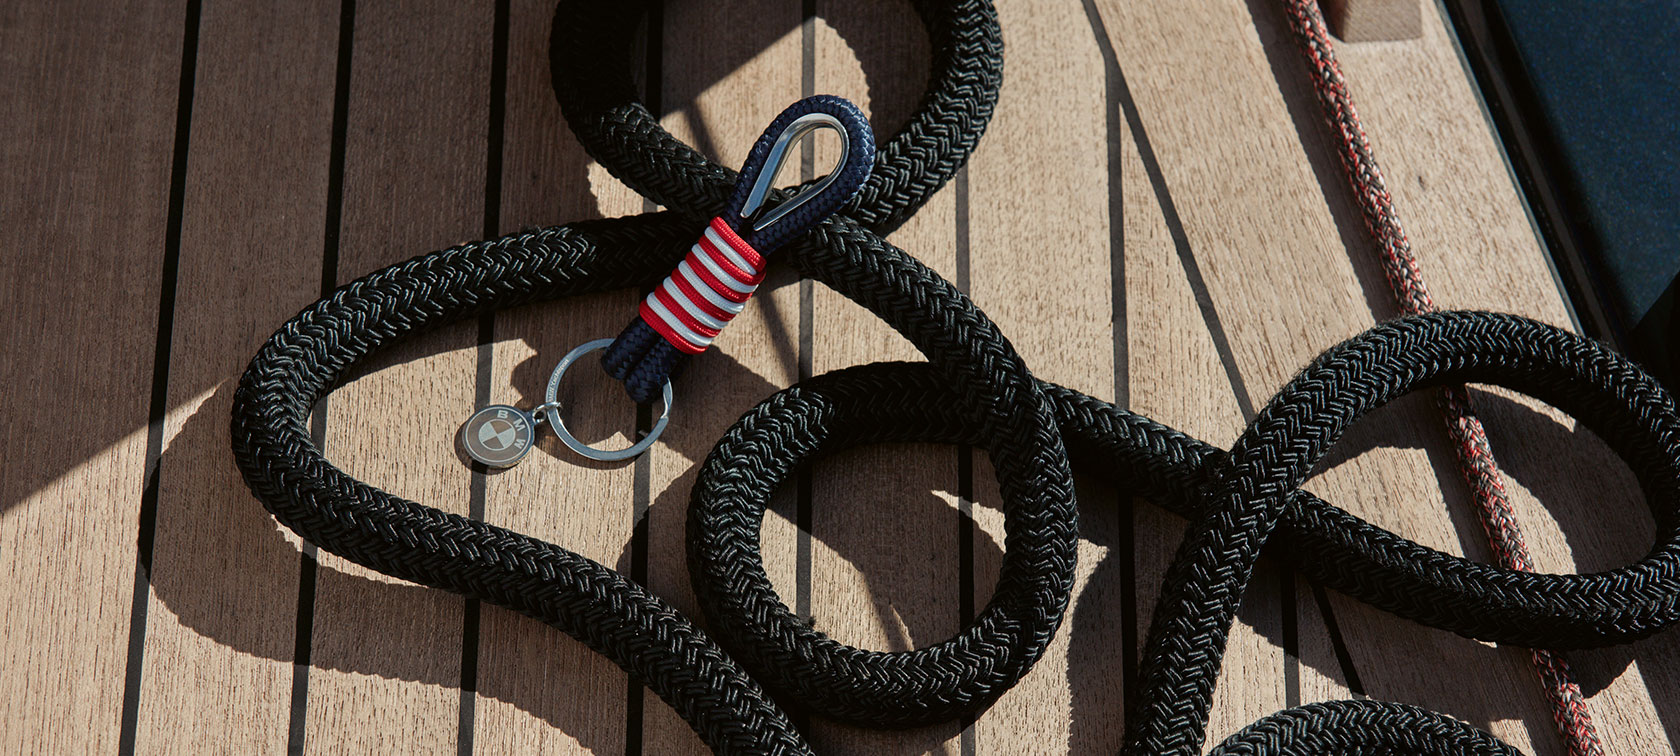 A BMW Yachtsport Keyring from the BMW Yachtsport Collection is shown lying on wooden decking.